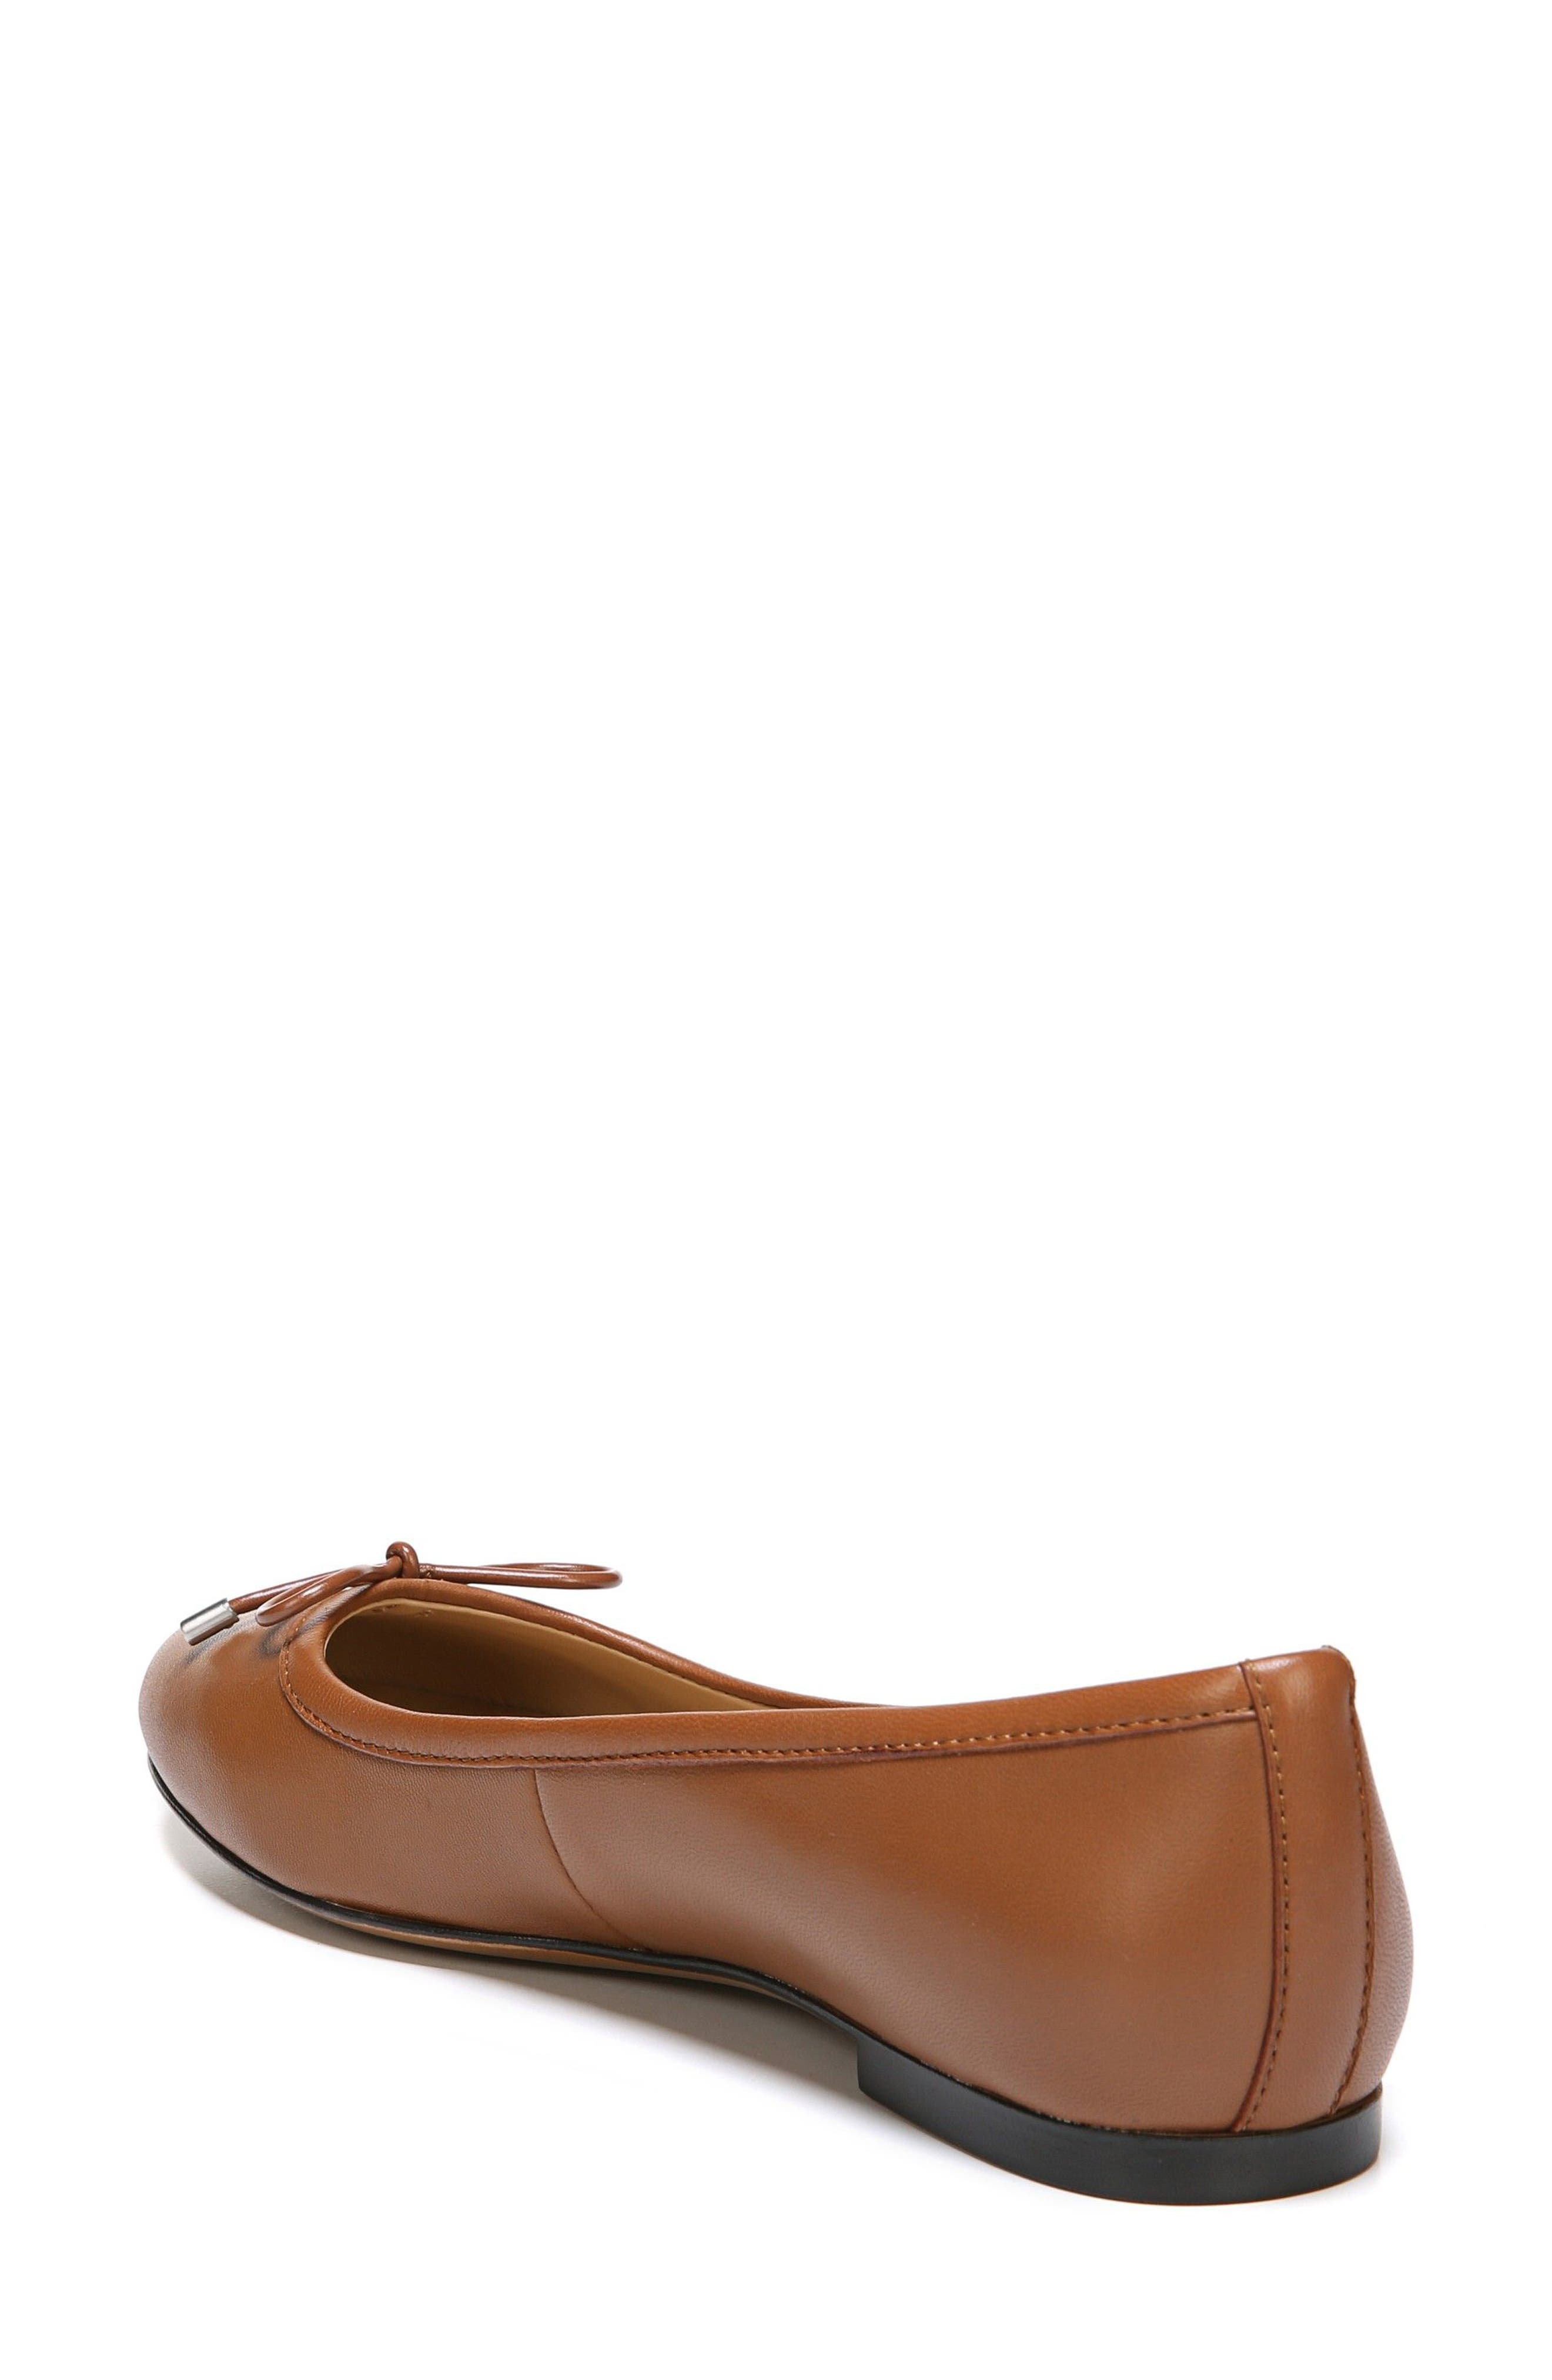 Grace Flat,                             Alternate thumbnail 2, color,                             Saddle Tan Leather